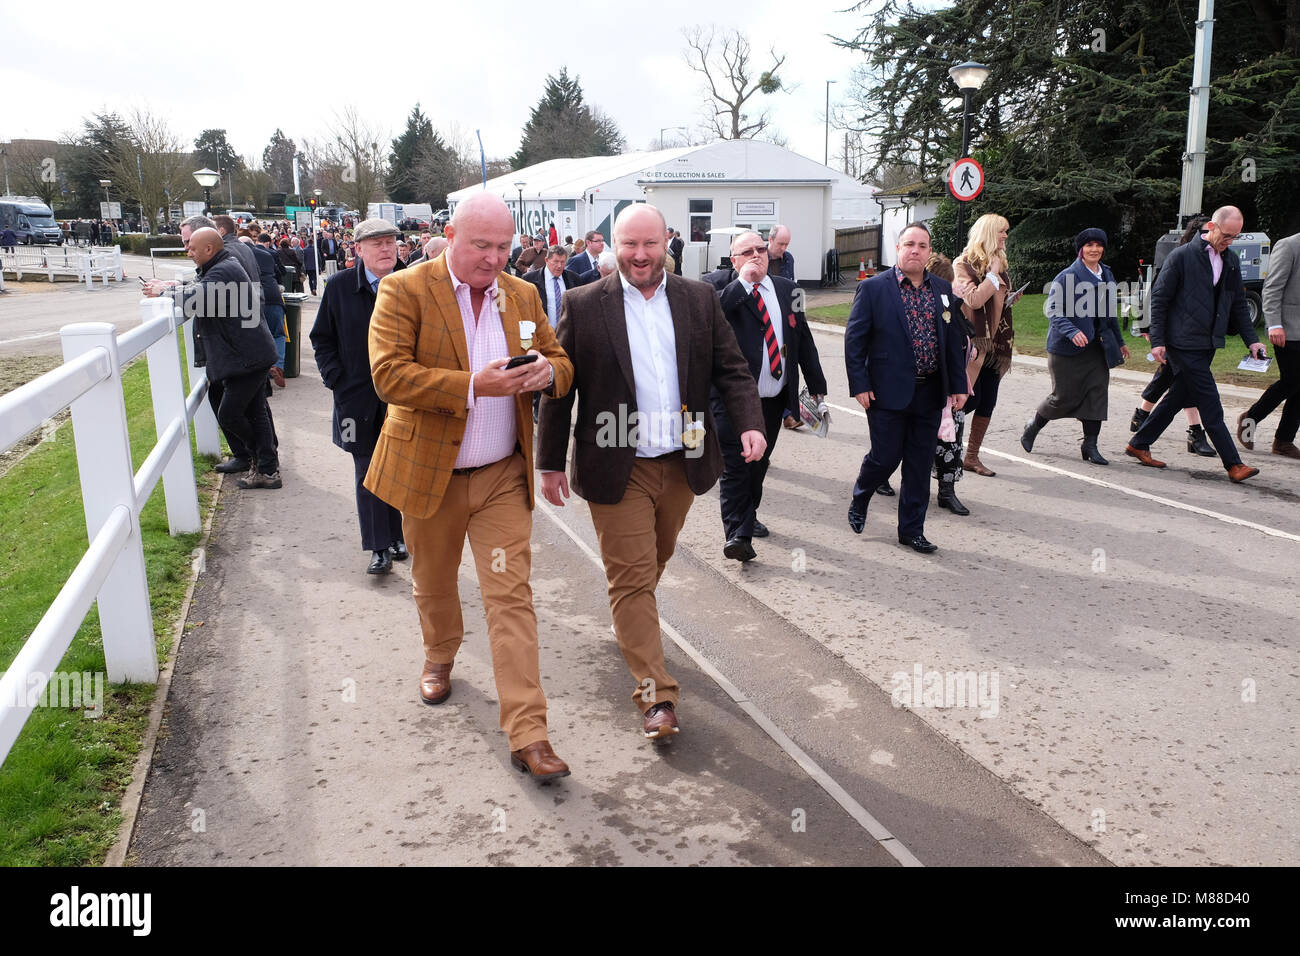 Cheltenham Festival, Gloucestershire, UK - Friday 16th March 2018 - Race goers arrive at the Cheltenham racing festival - Stock Image